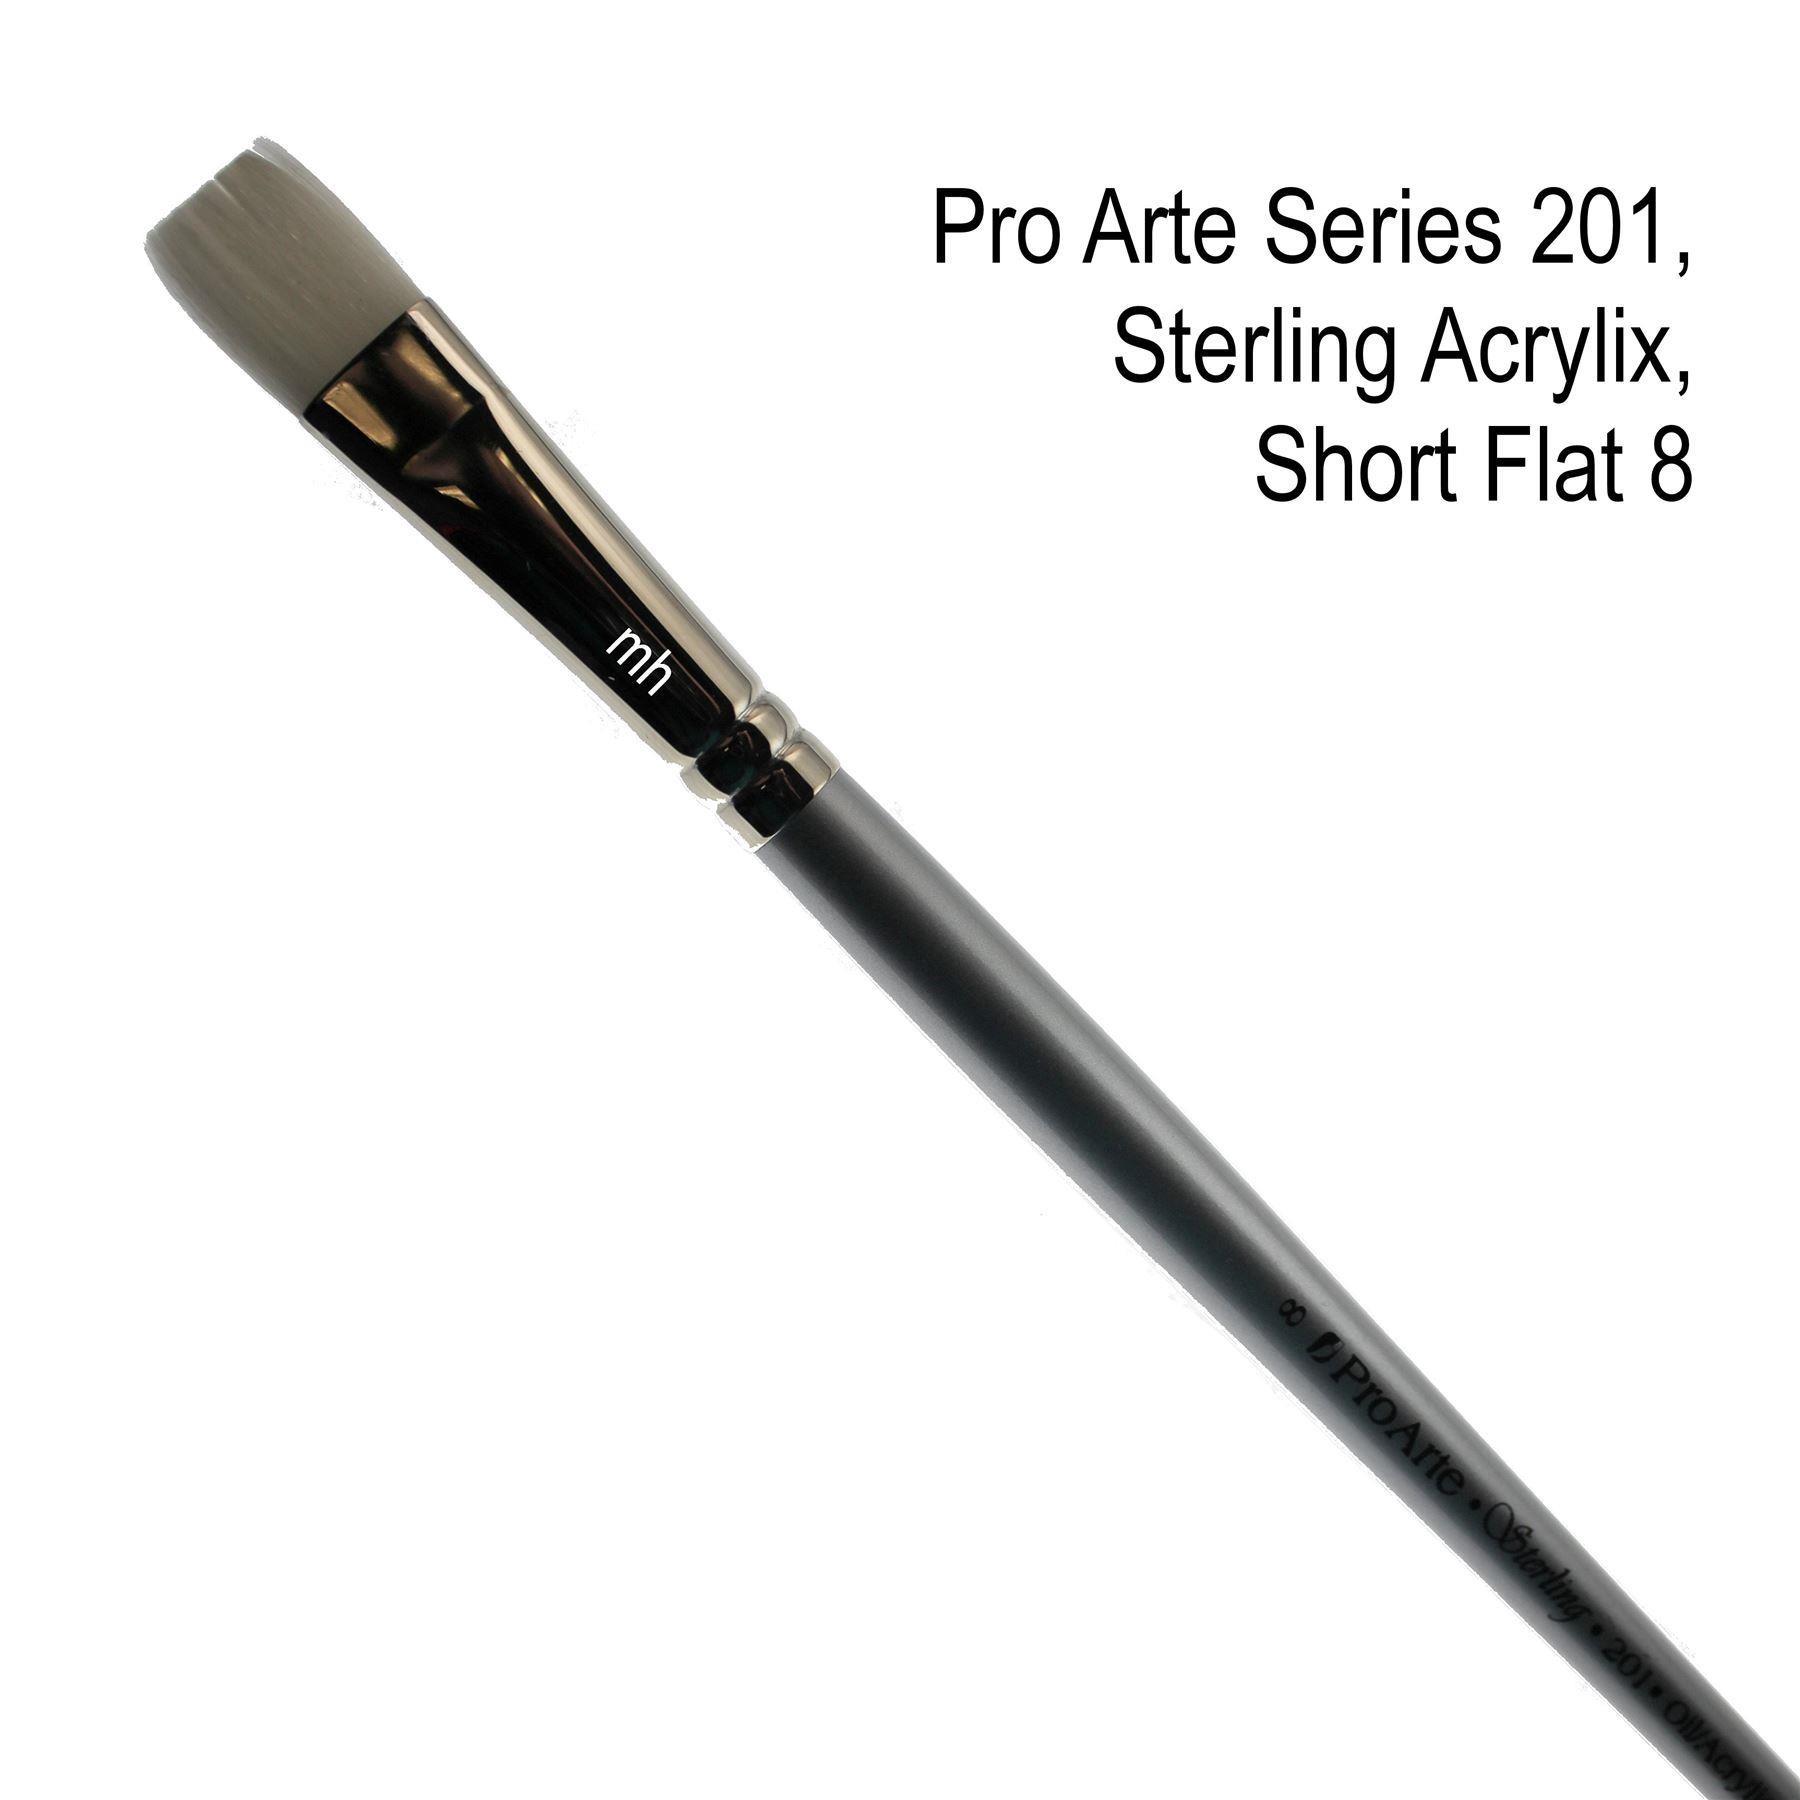 Pro Arte Series 201, Sterling Acrylix Brushes, Short Flat Brush - Assorted Sizes